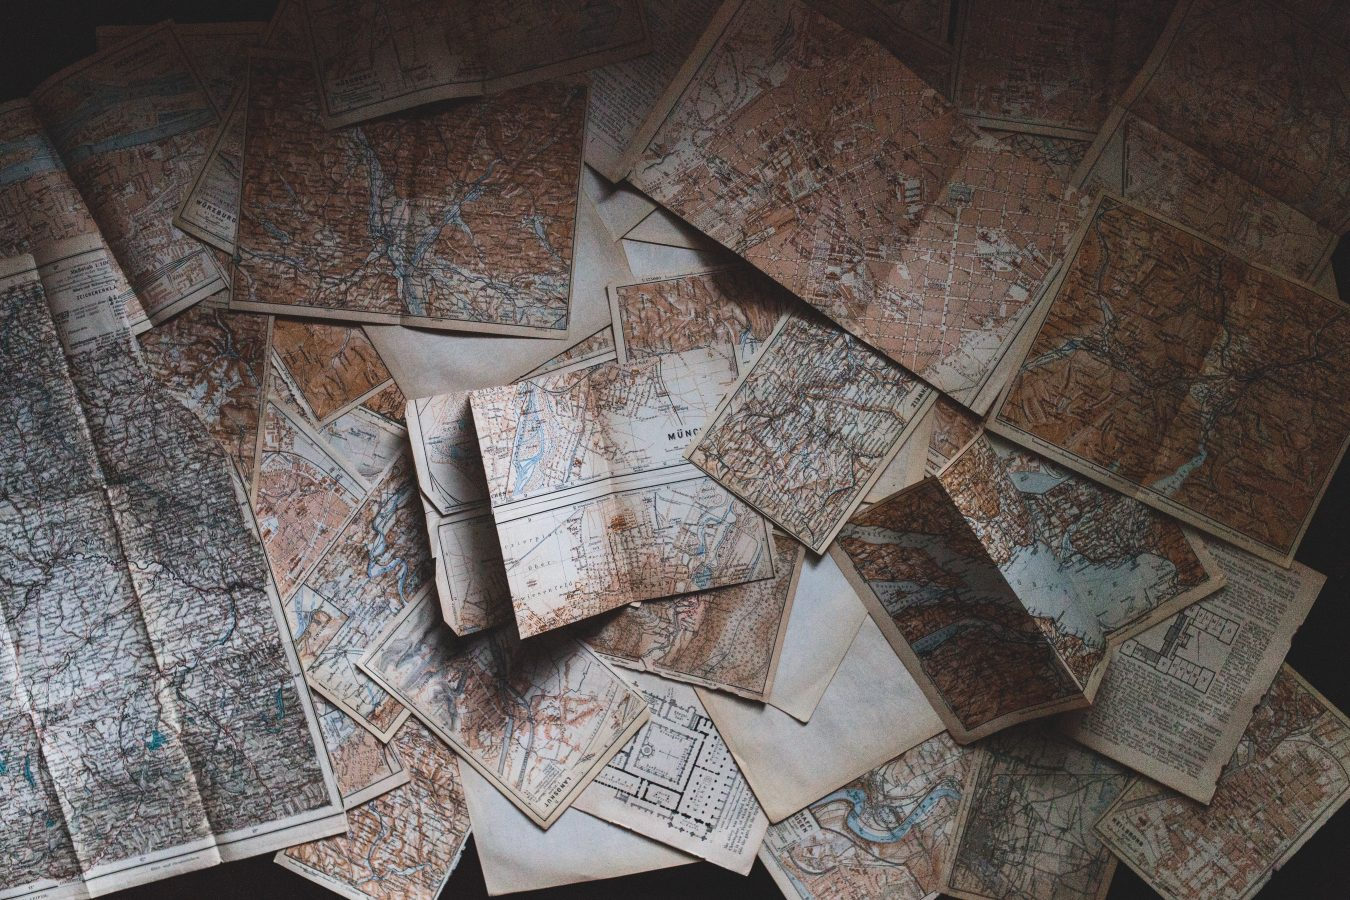 Collection of maps lying on the floor